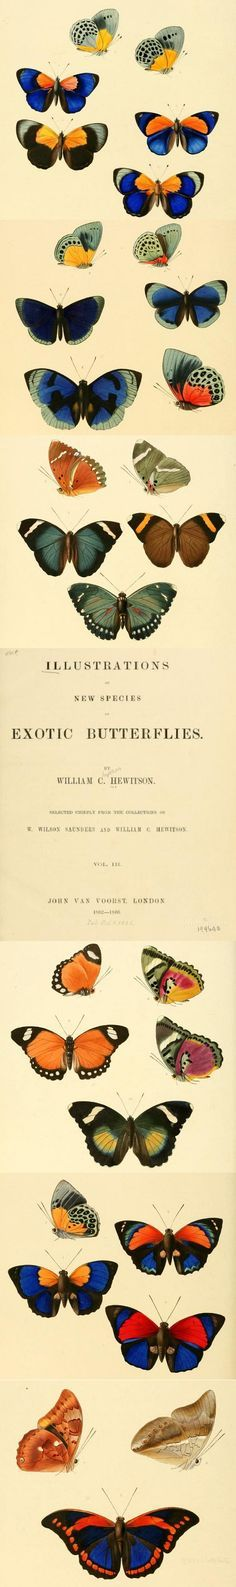 Click to read this #butterfly book from 1856. These butterflies are great inspiration for woodworking, craft, art and many other DIY projects! Woods are divided into two main classifications - hardwood and softwood. Personally, I think dories are good for novice contractor. Although it might sound unusual, water can be a boat's worst nightmare.